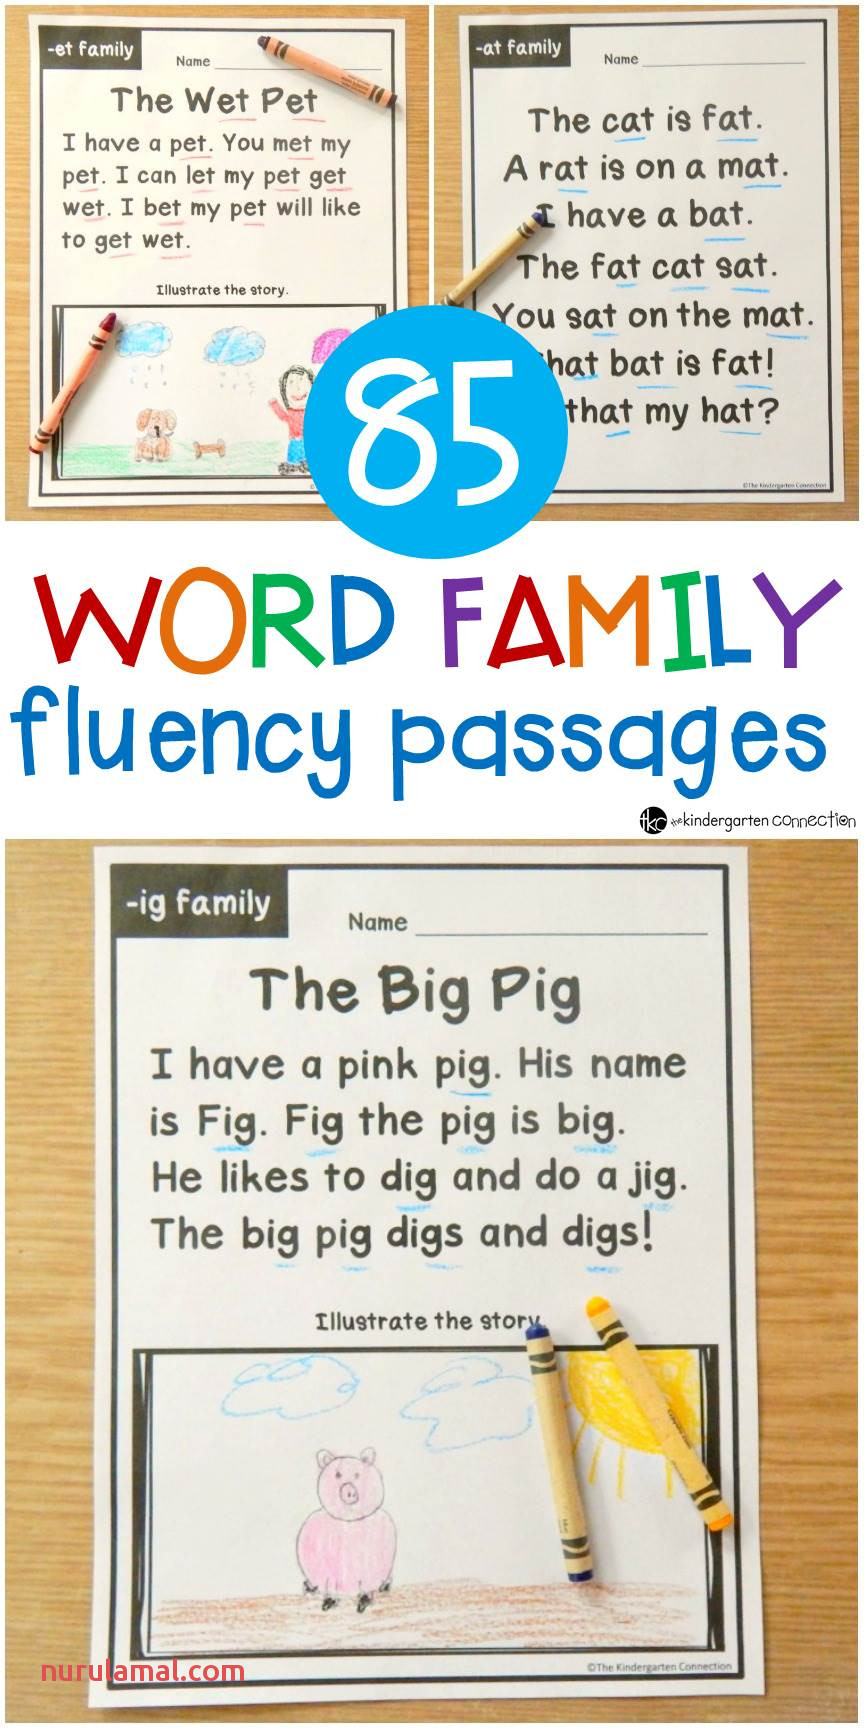 Word Family Fluency Passages for Early Readers In Kindergarten